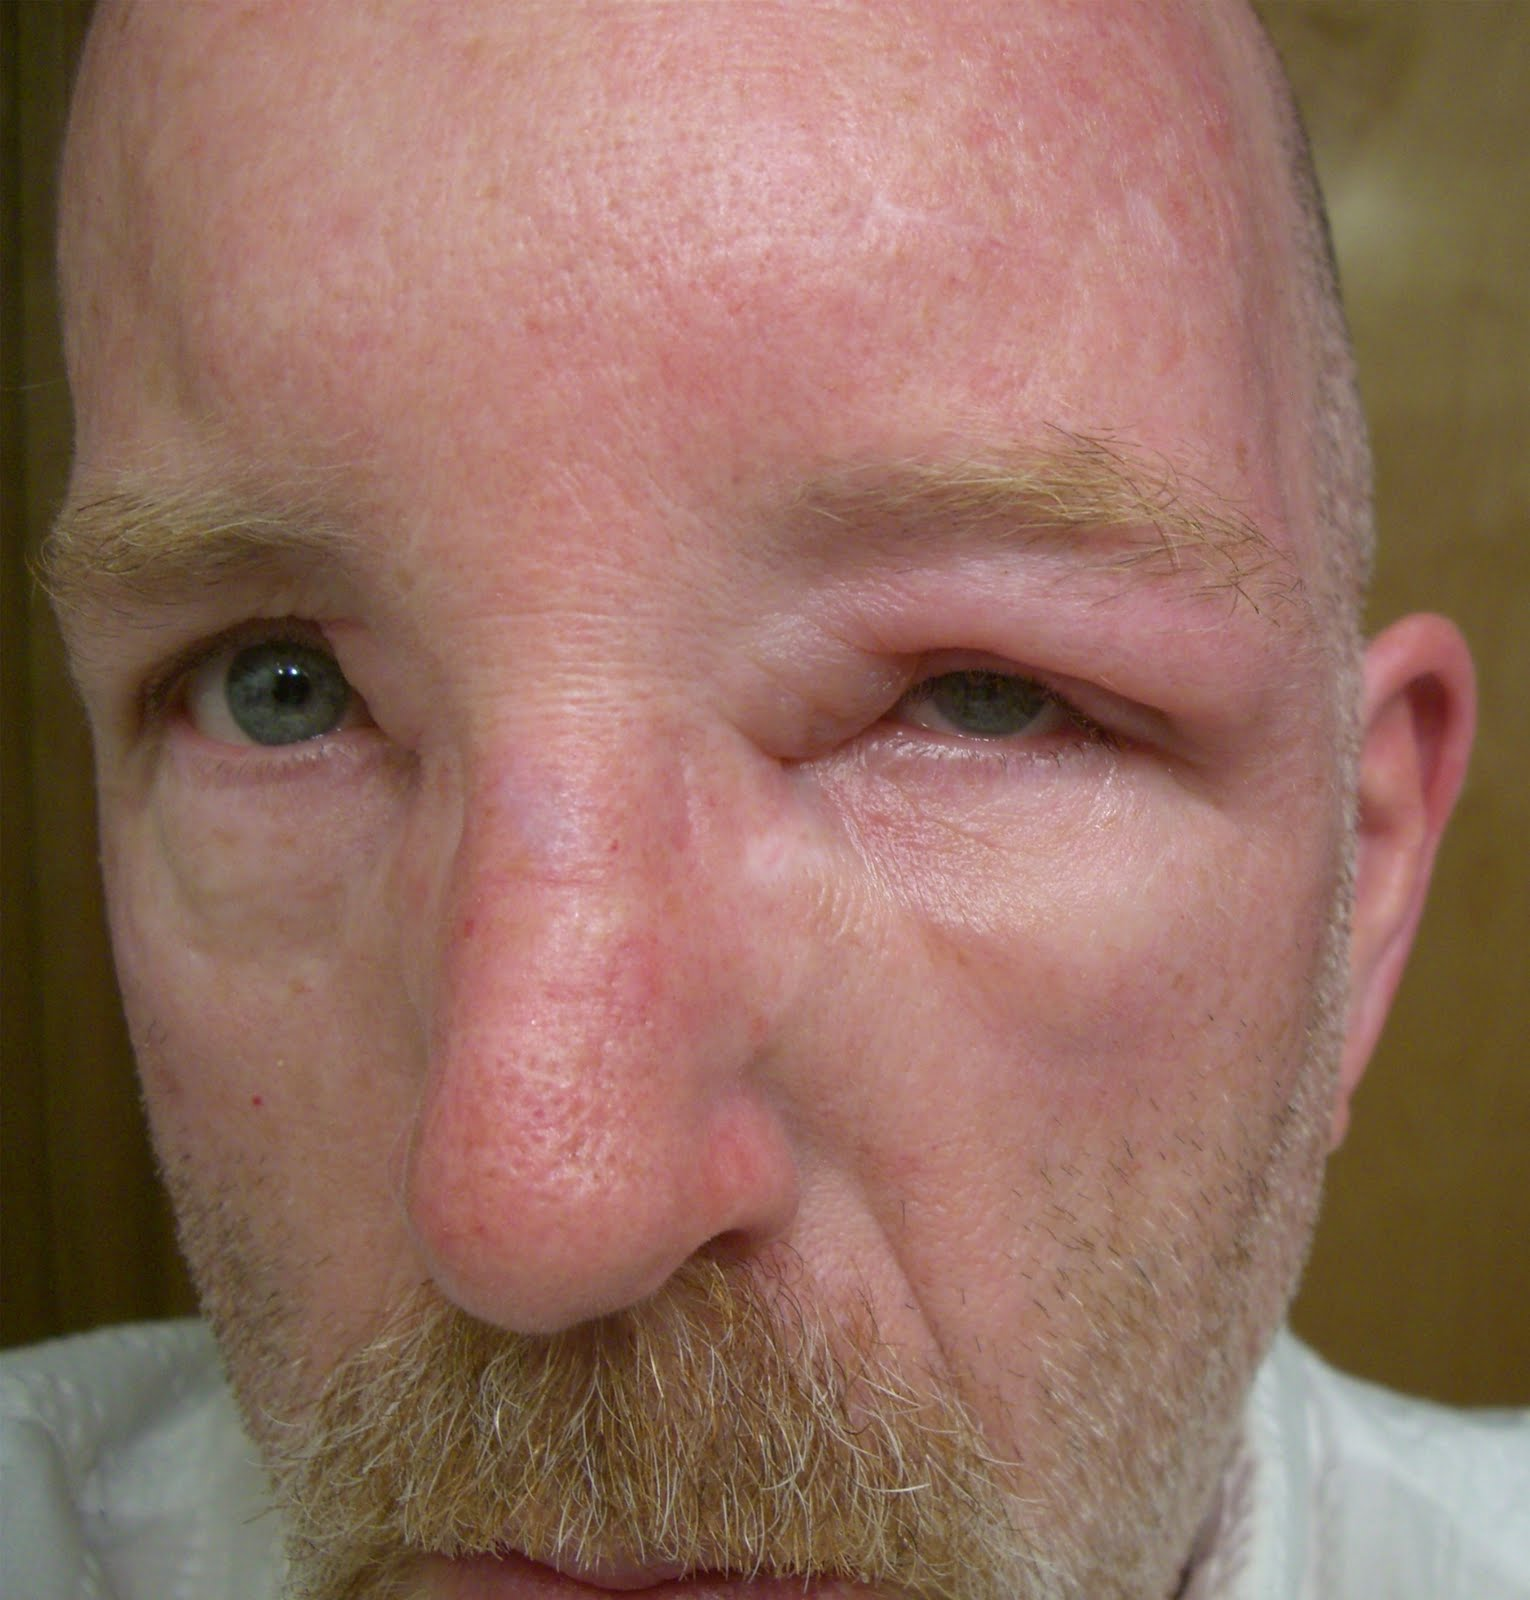 paper wasp sting reaction - photo #3